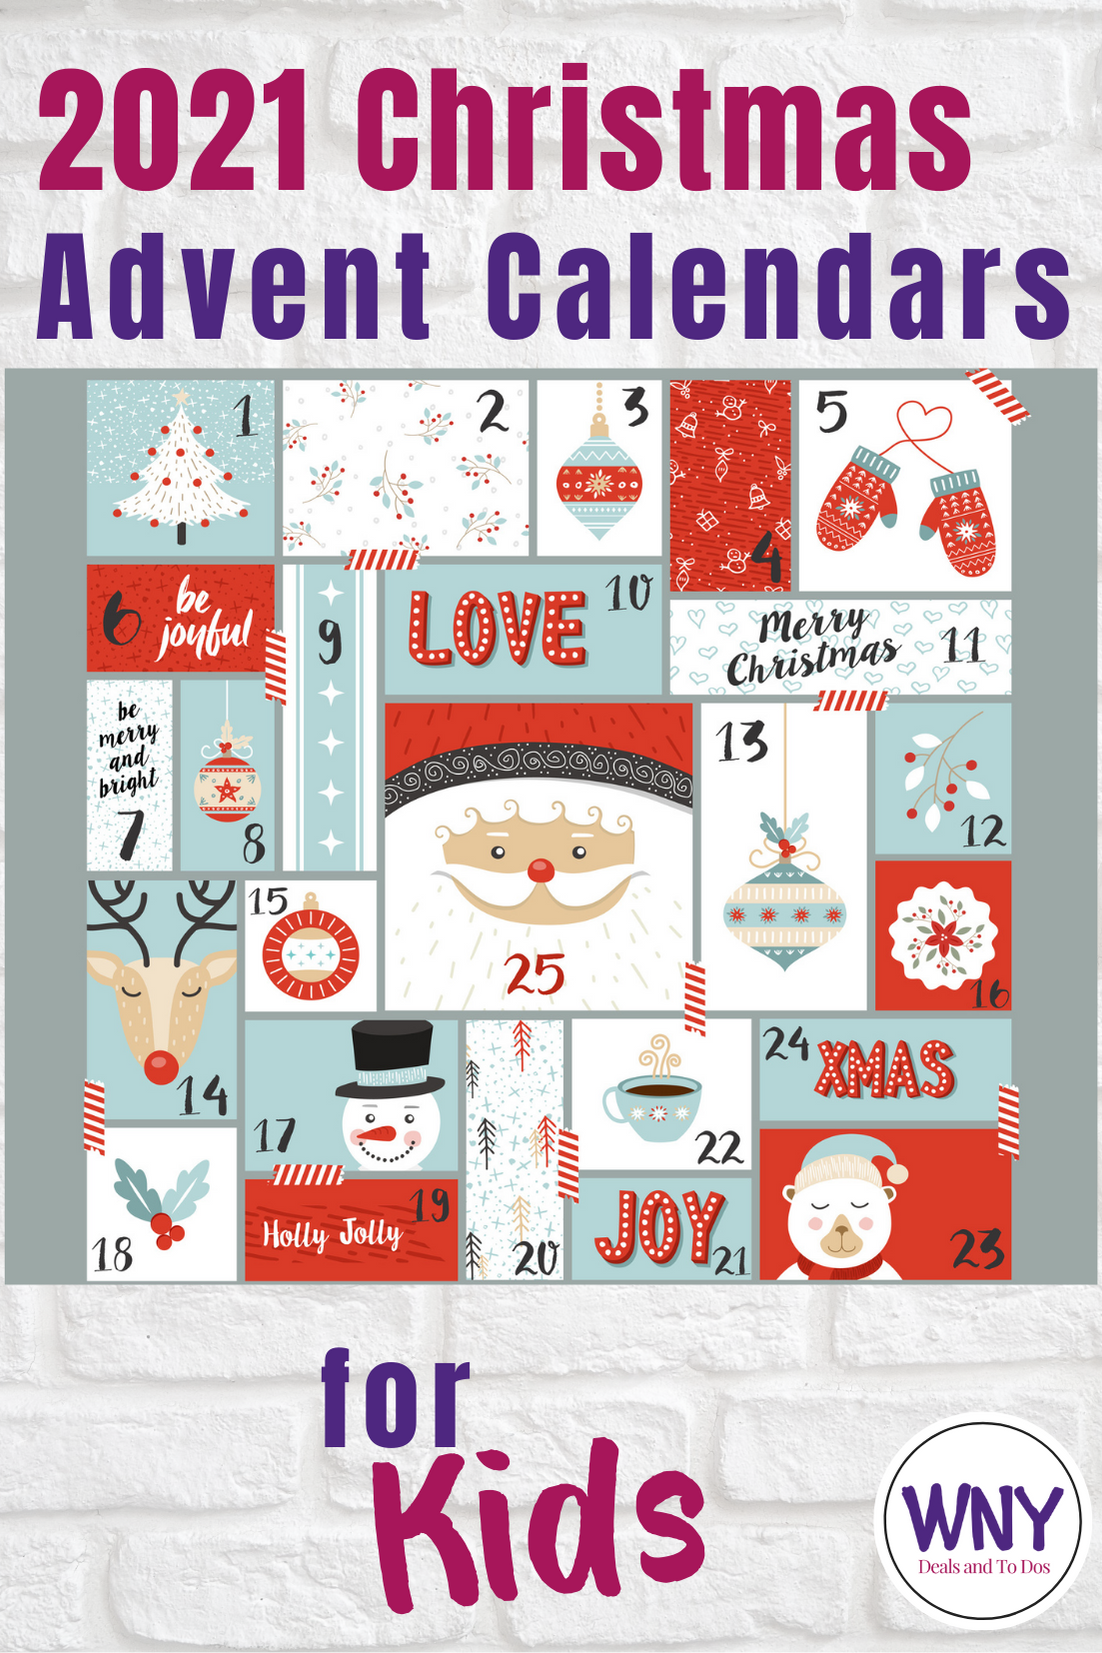 Check out this list of 2021 advent calendars for toddlers and kids including Matchbox, Lego, Minecraft, Paw Patrol, and more!  #advent #adventcalendar #adventcalendars #Christmas #Christmas2021 #tradition